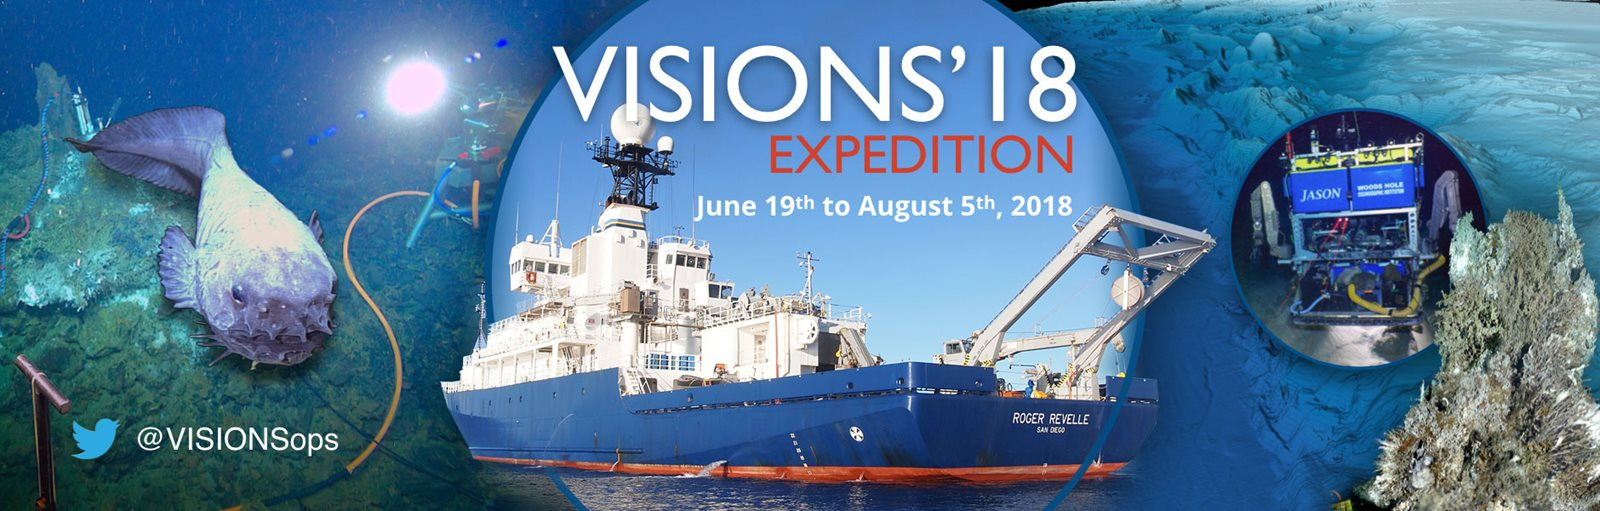 Visions 18 banner